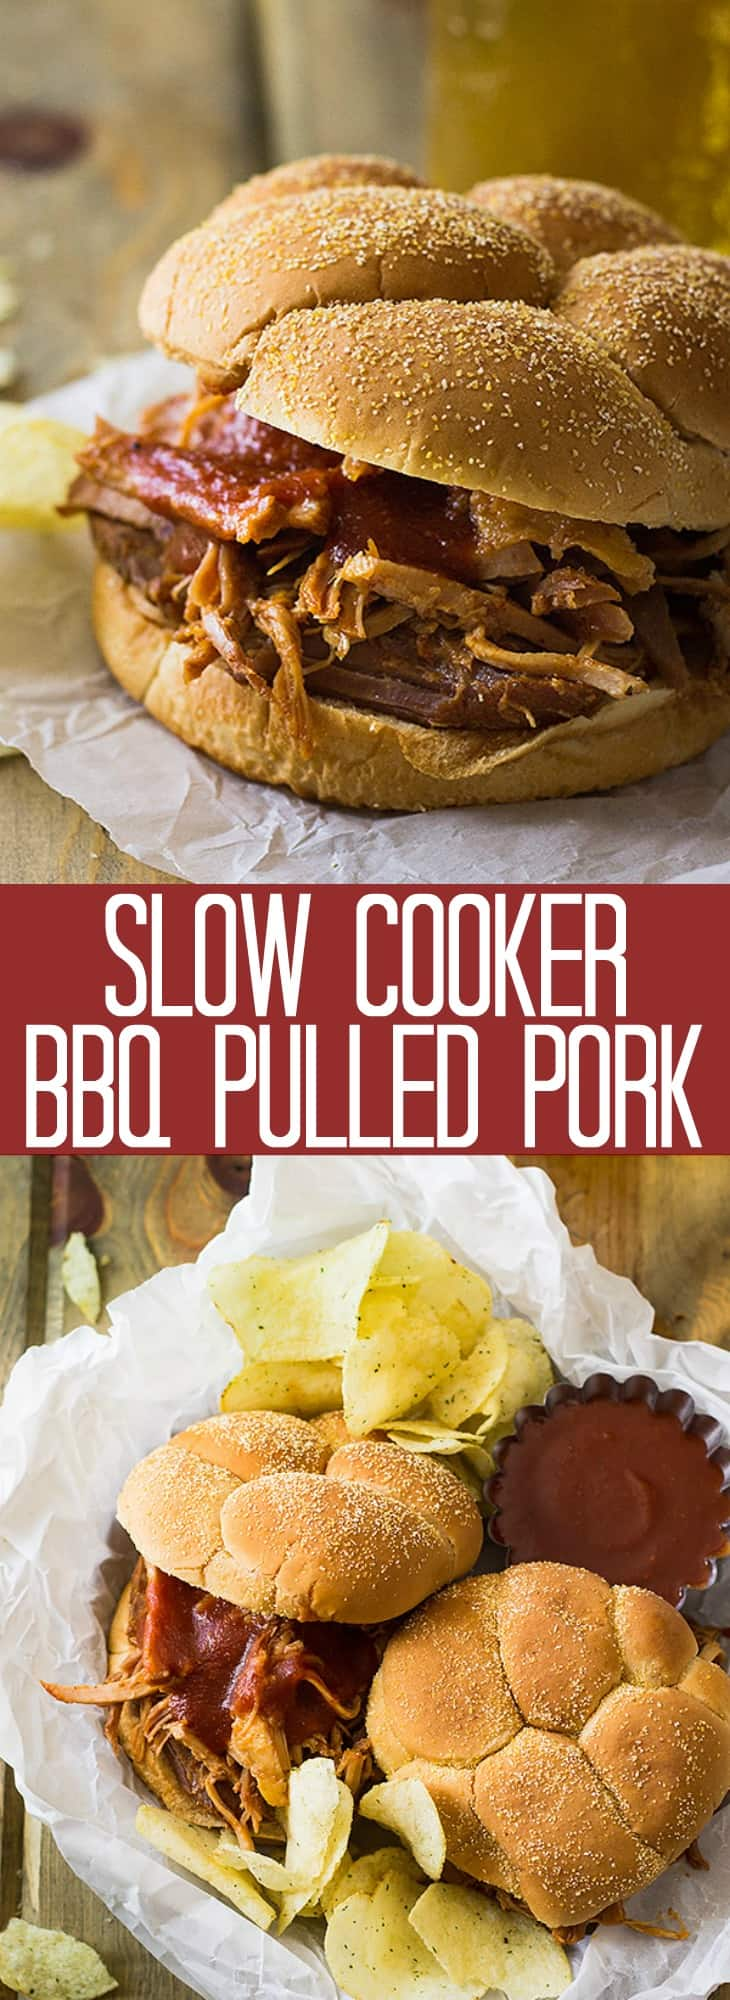 This Slow Cooker BBQ Pulled Pork is perfect for when you can't use your smoker but want some great bbq! It's full of flavor, tender and made easy with your crockpot!